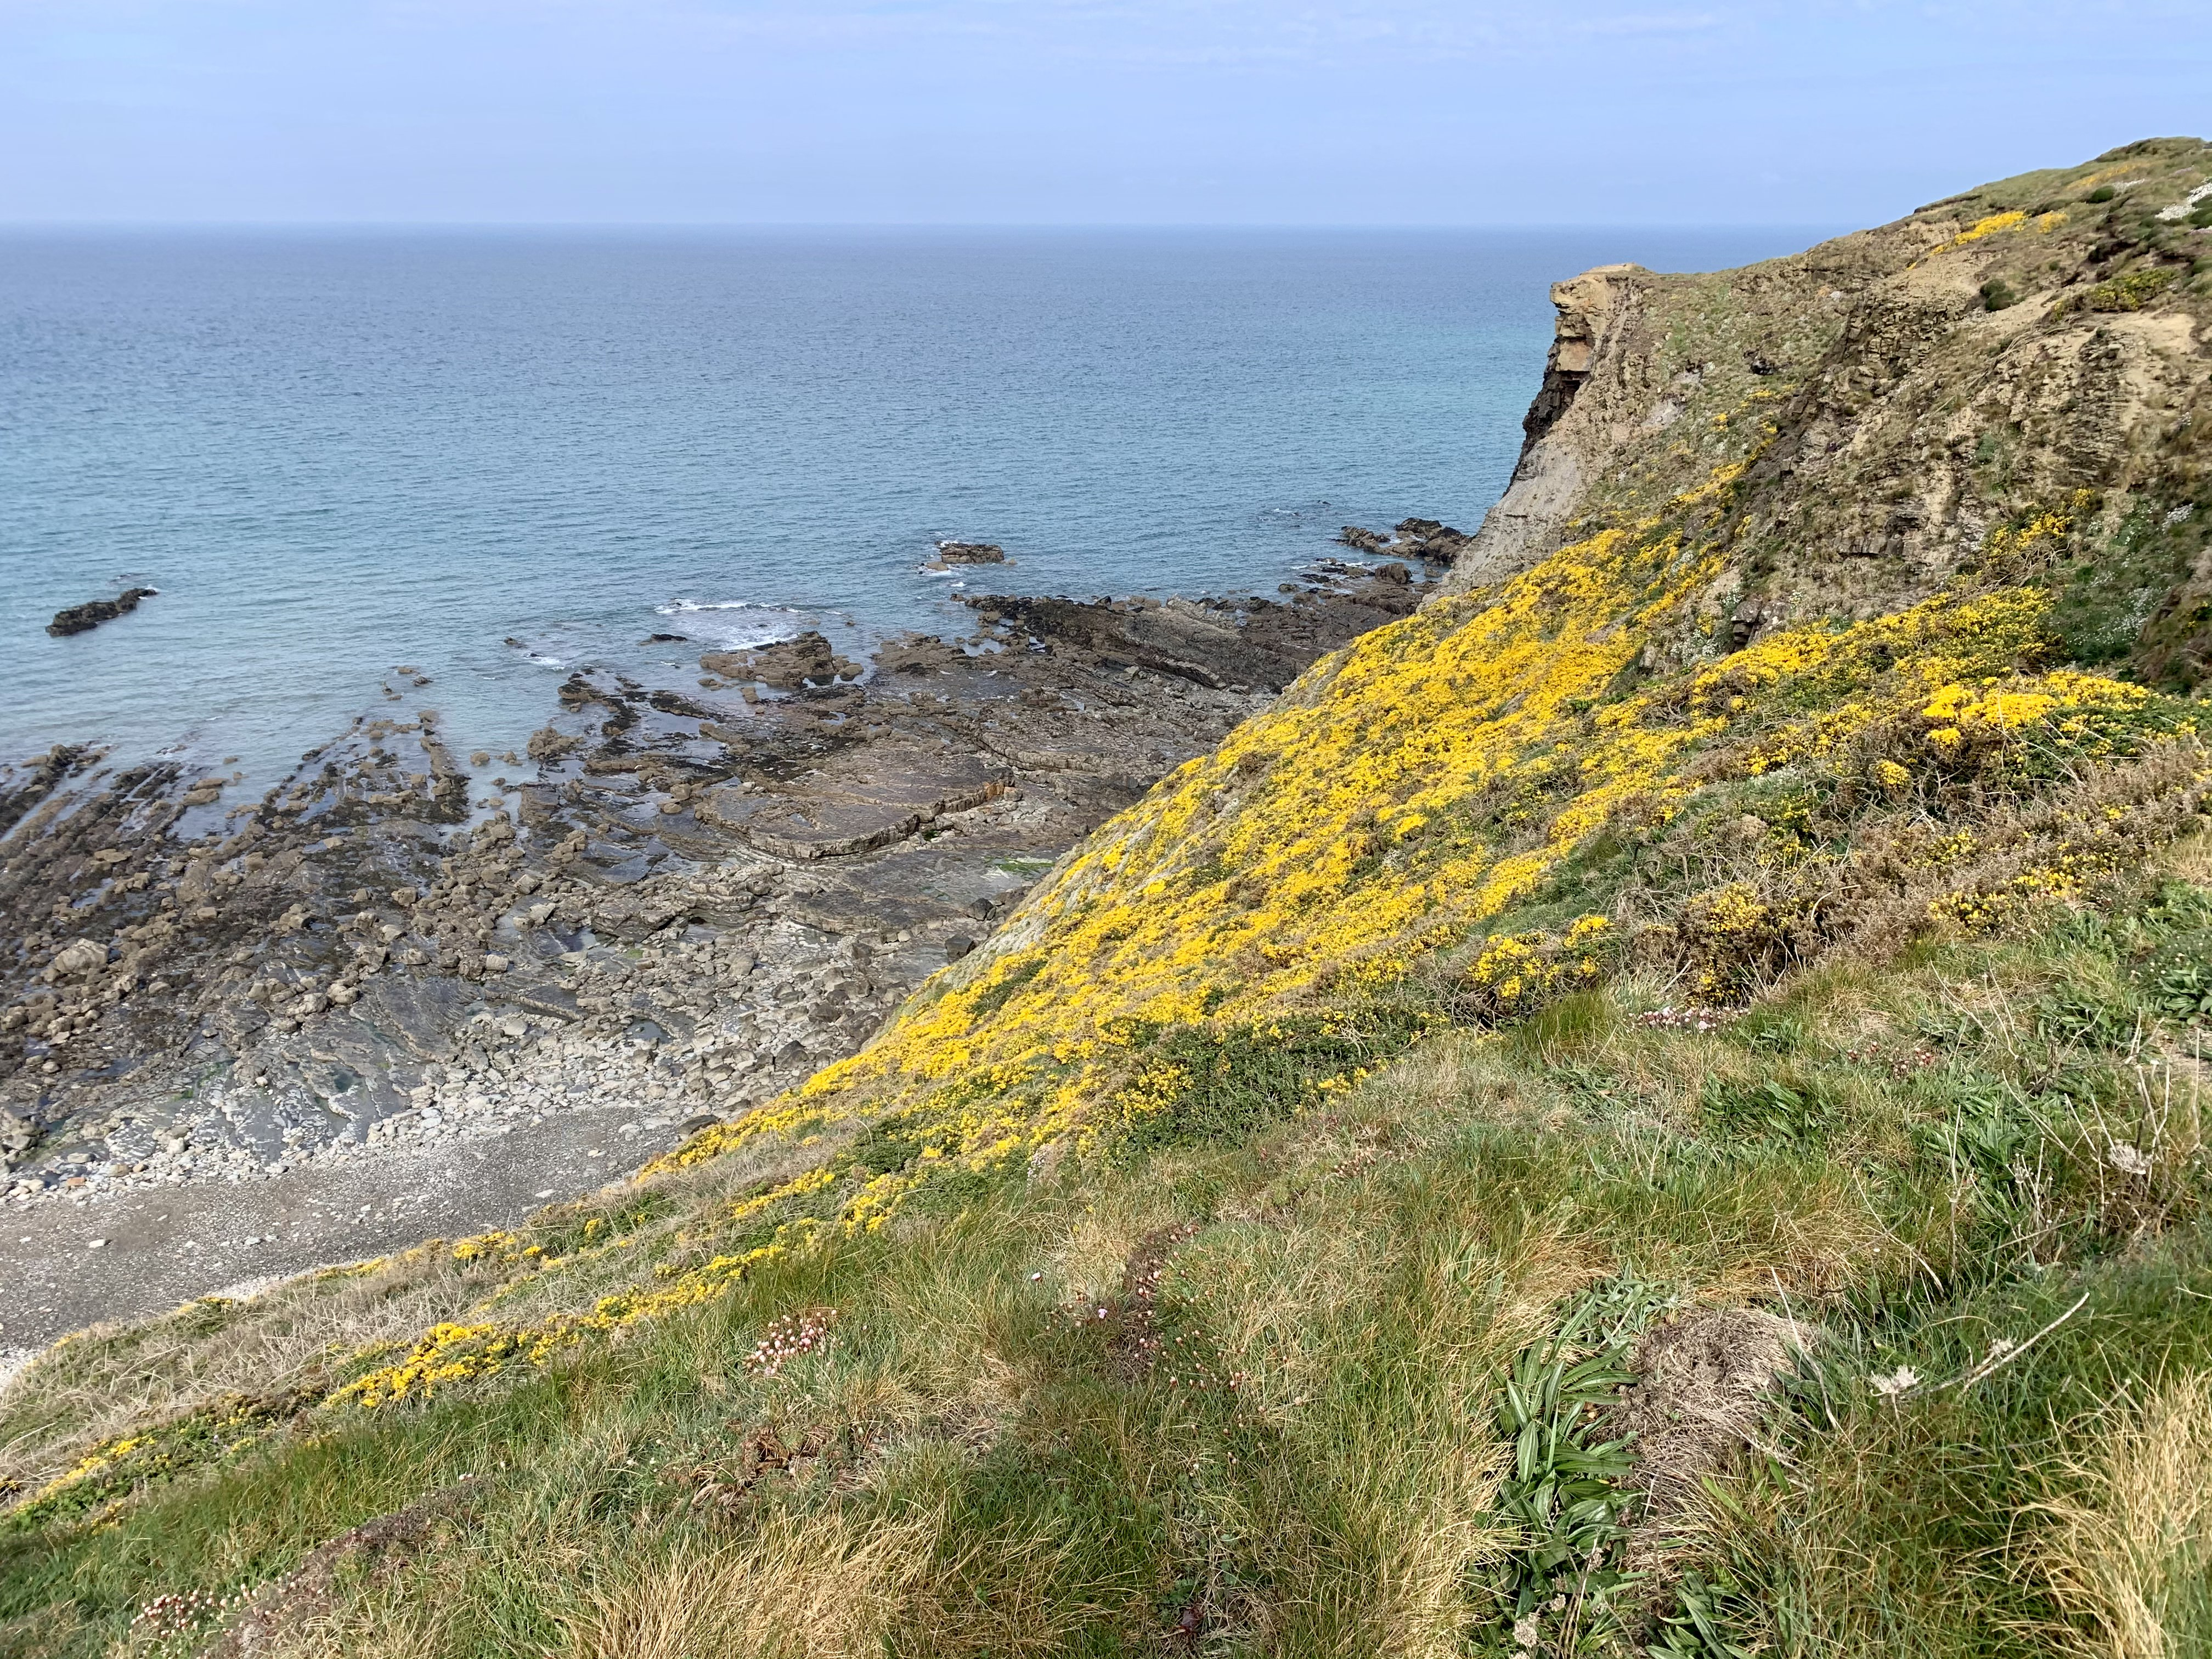 Colourful cliff side on the South West Coast Path out of Widemouth Bay